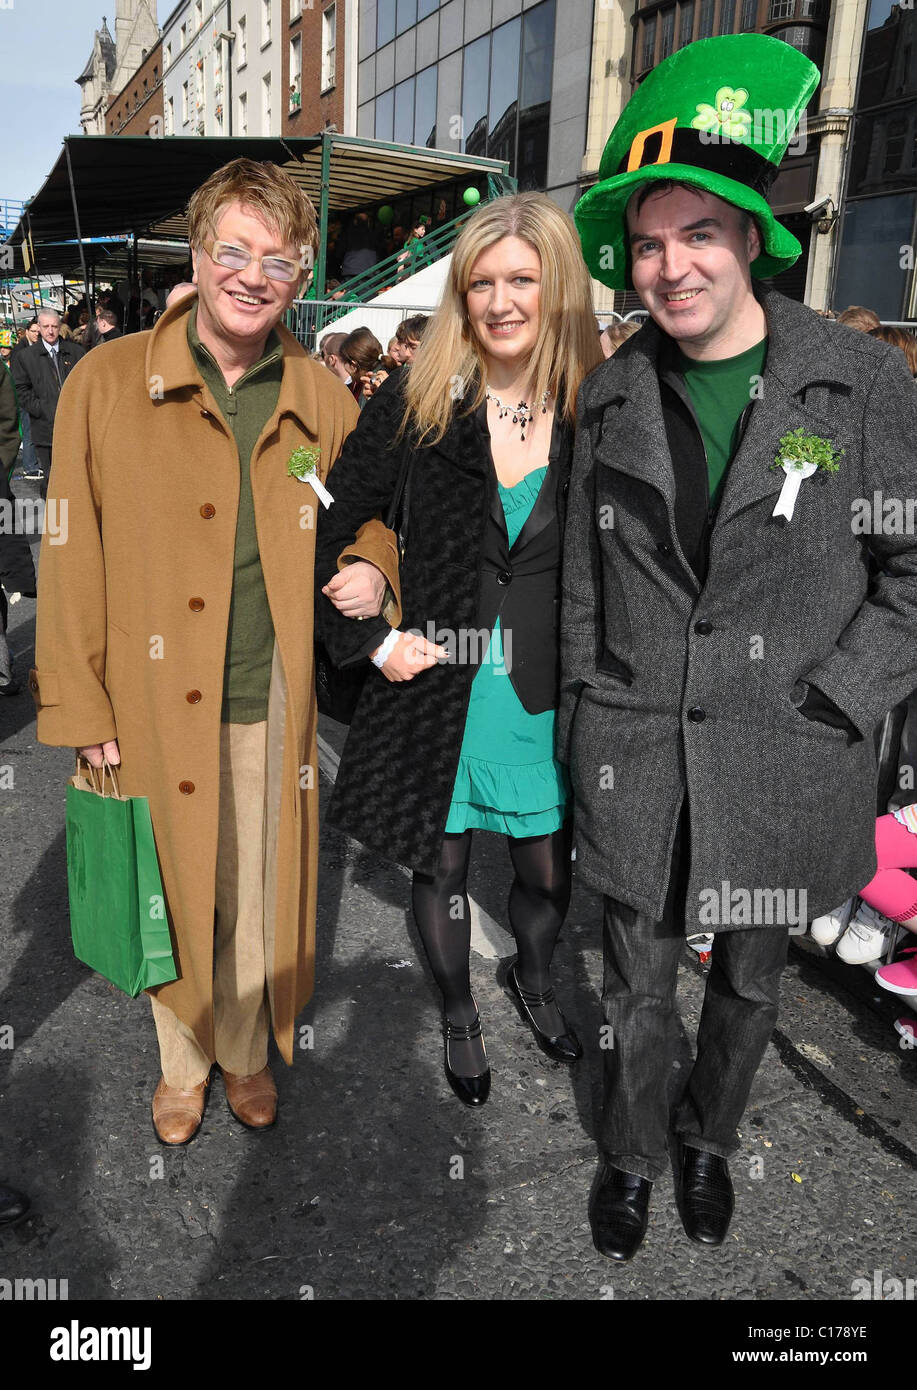 Alan Amsby, Francis Winston, Eugene Masterson The St. Patrick's Day parade takes place in Dublin Dublin, Ireland - Stock Image